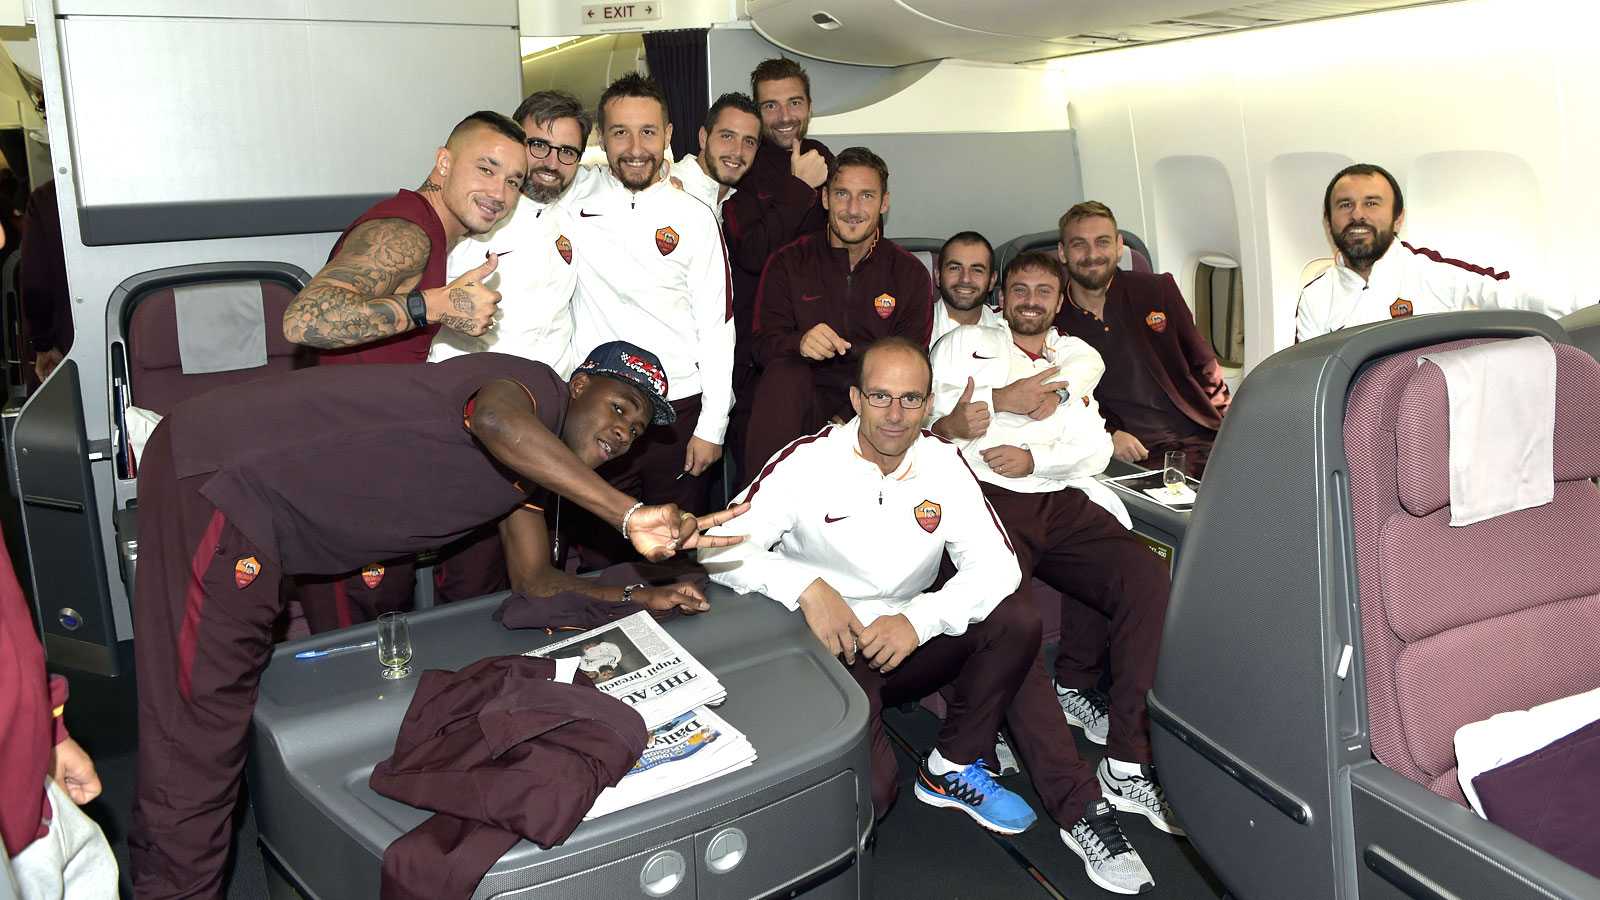 Five Roma players without visas denied entry to Indonesia